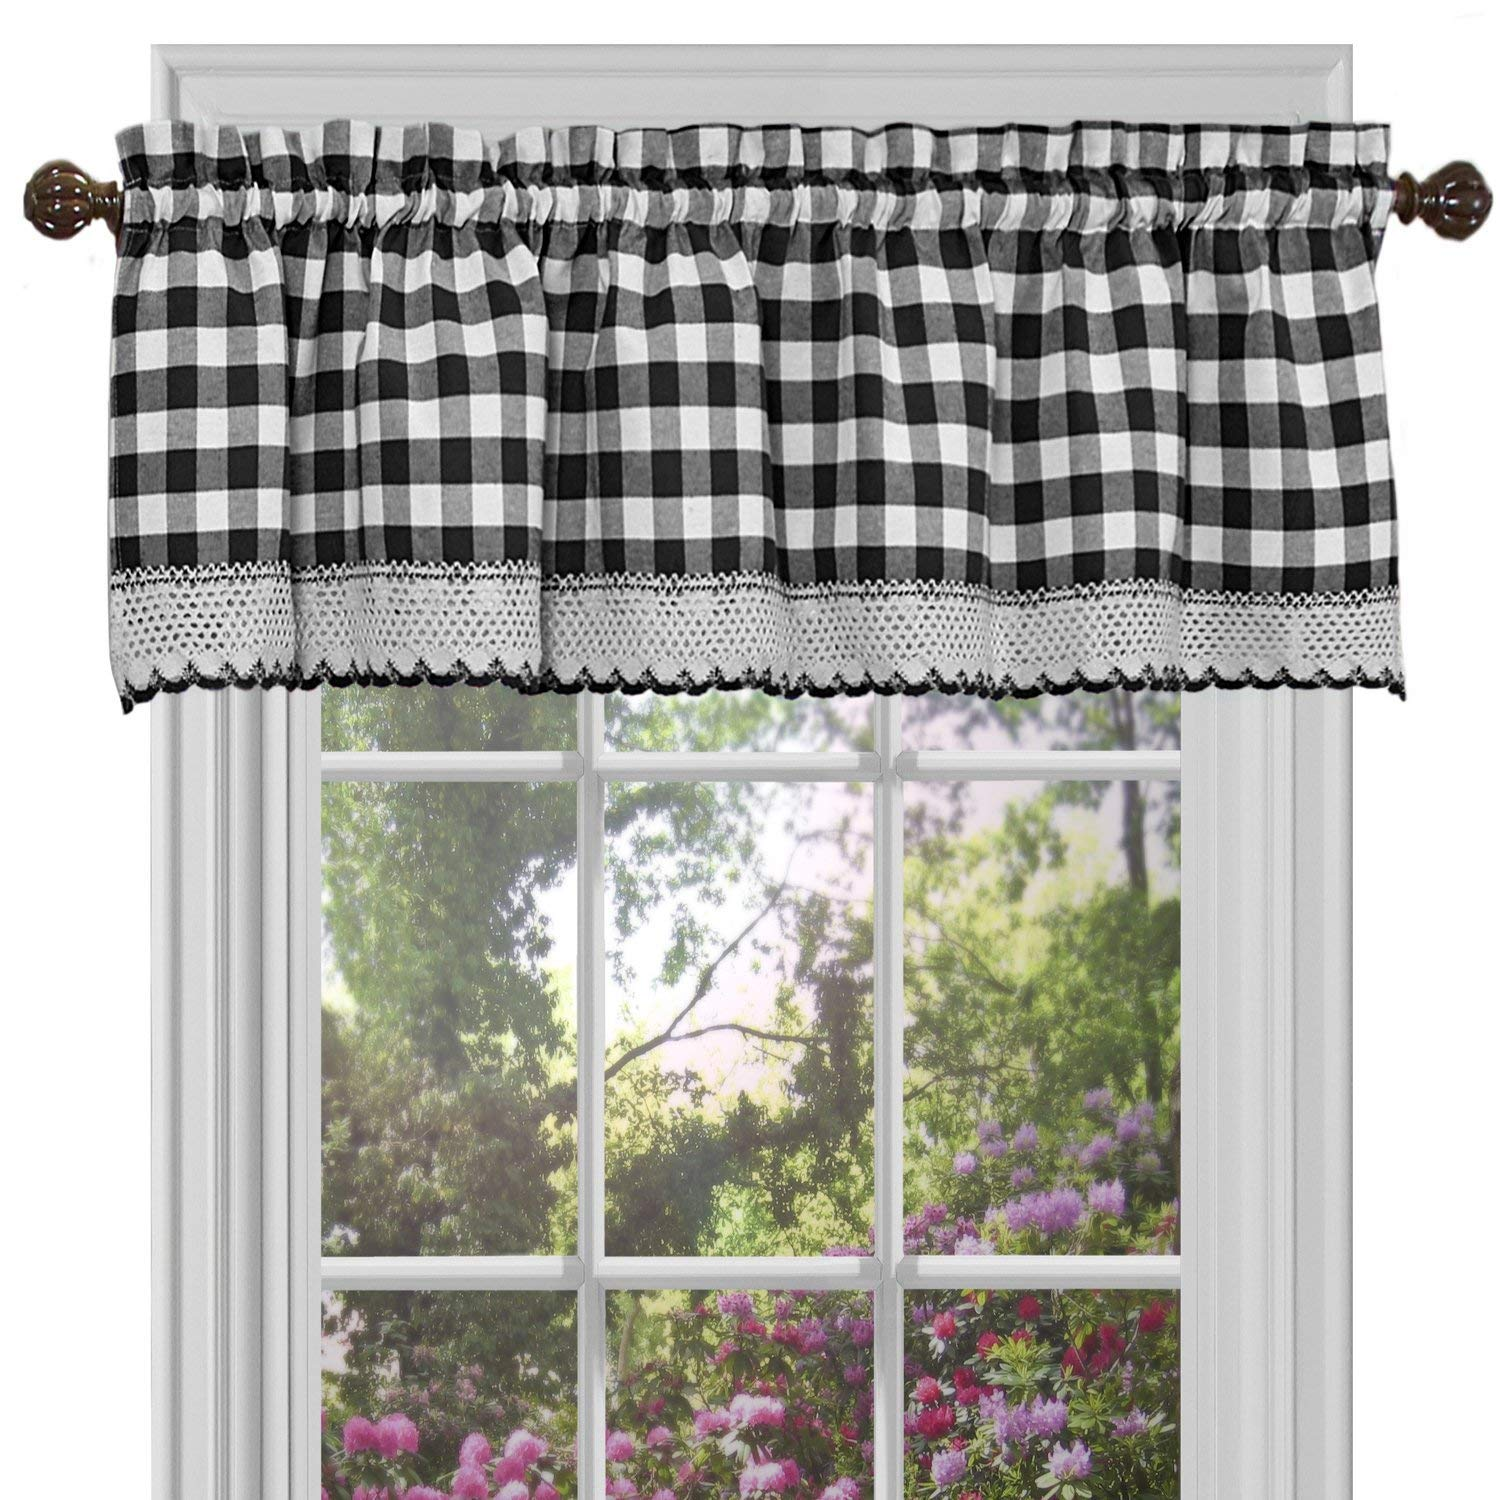 GoodGram Buffalo Check Plaid Gingham Custom Fit Farmhouse Window Valances - Assorted Colors (Black)